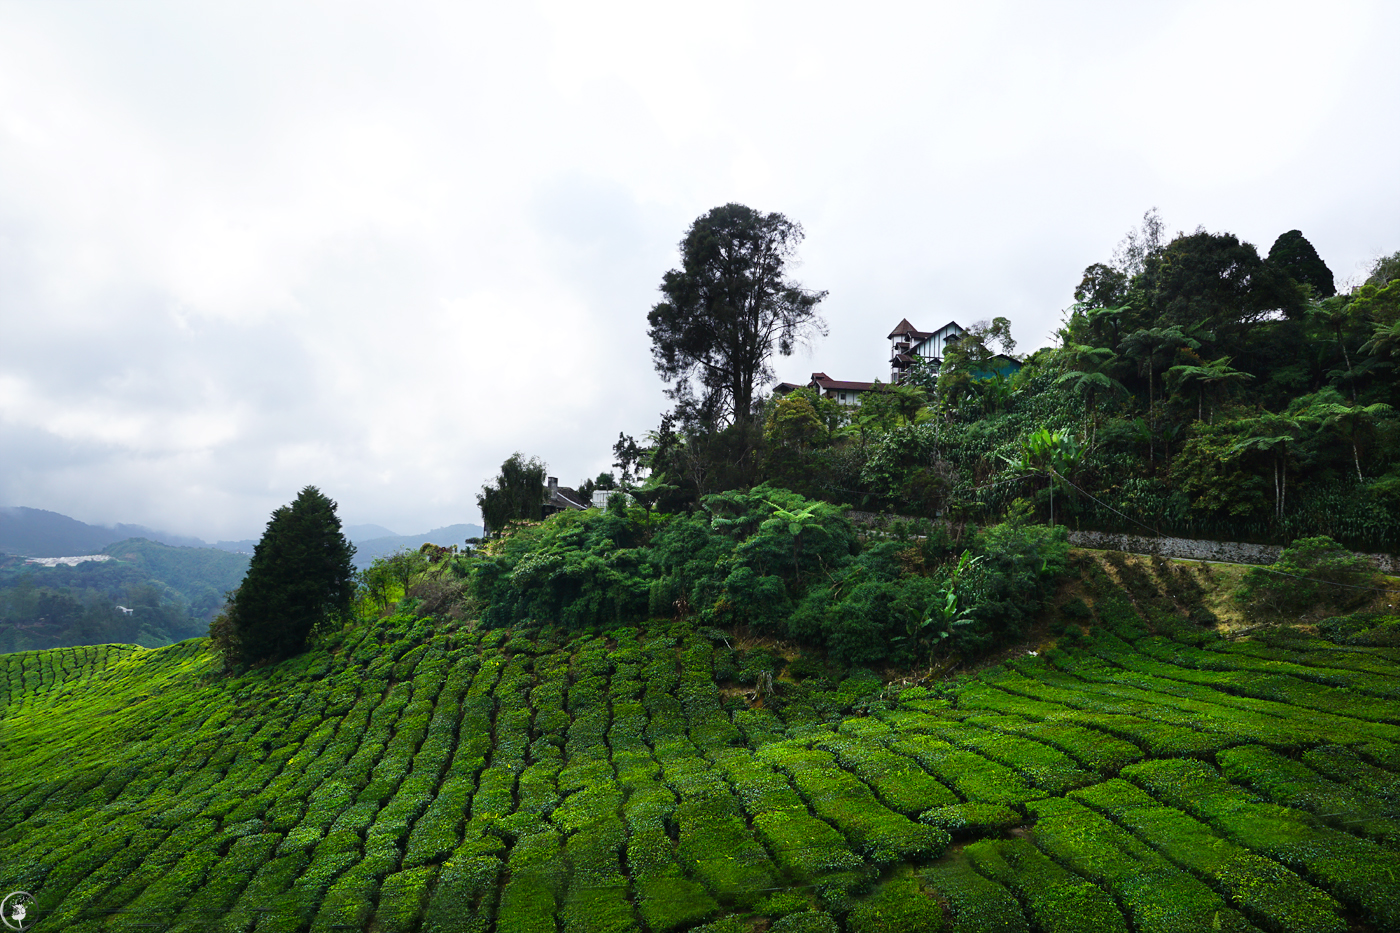 The Tea Plantations, Cameron Highlands